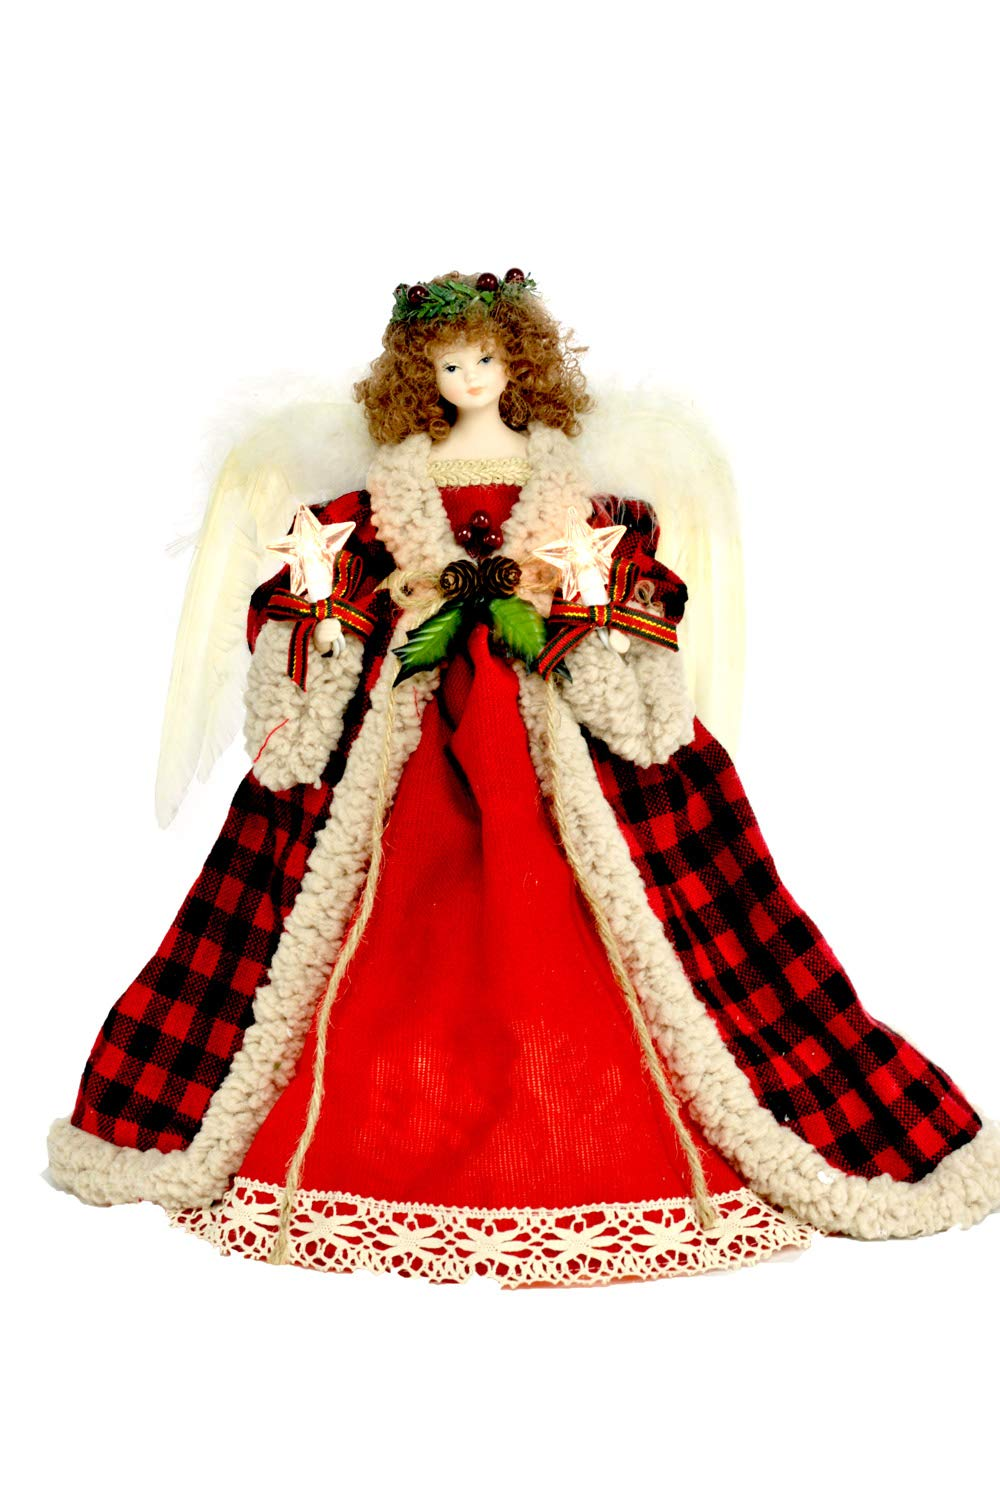 14 Fabric Red//Black 10 Lioght Angel Treetopper with Laurel Wreath